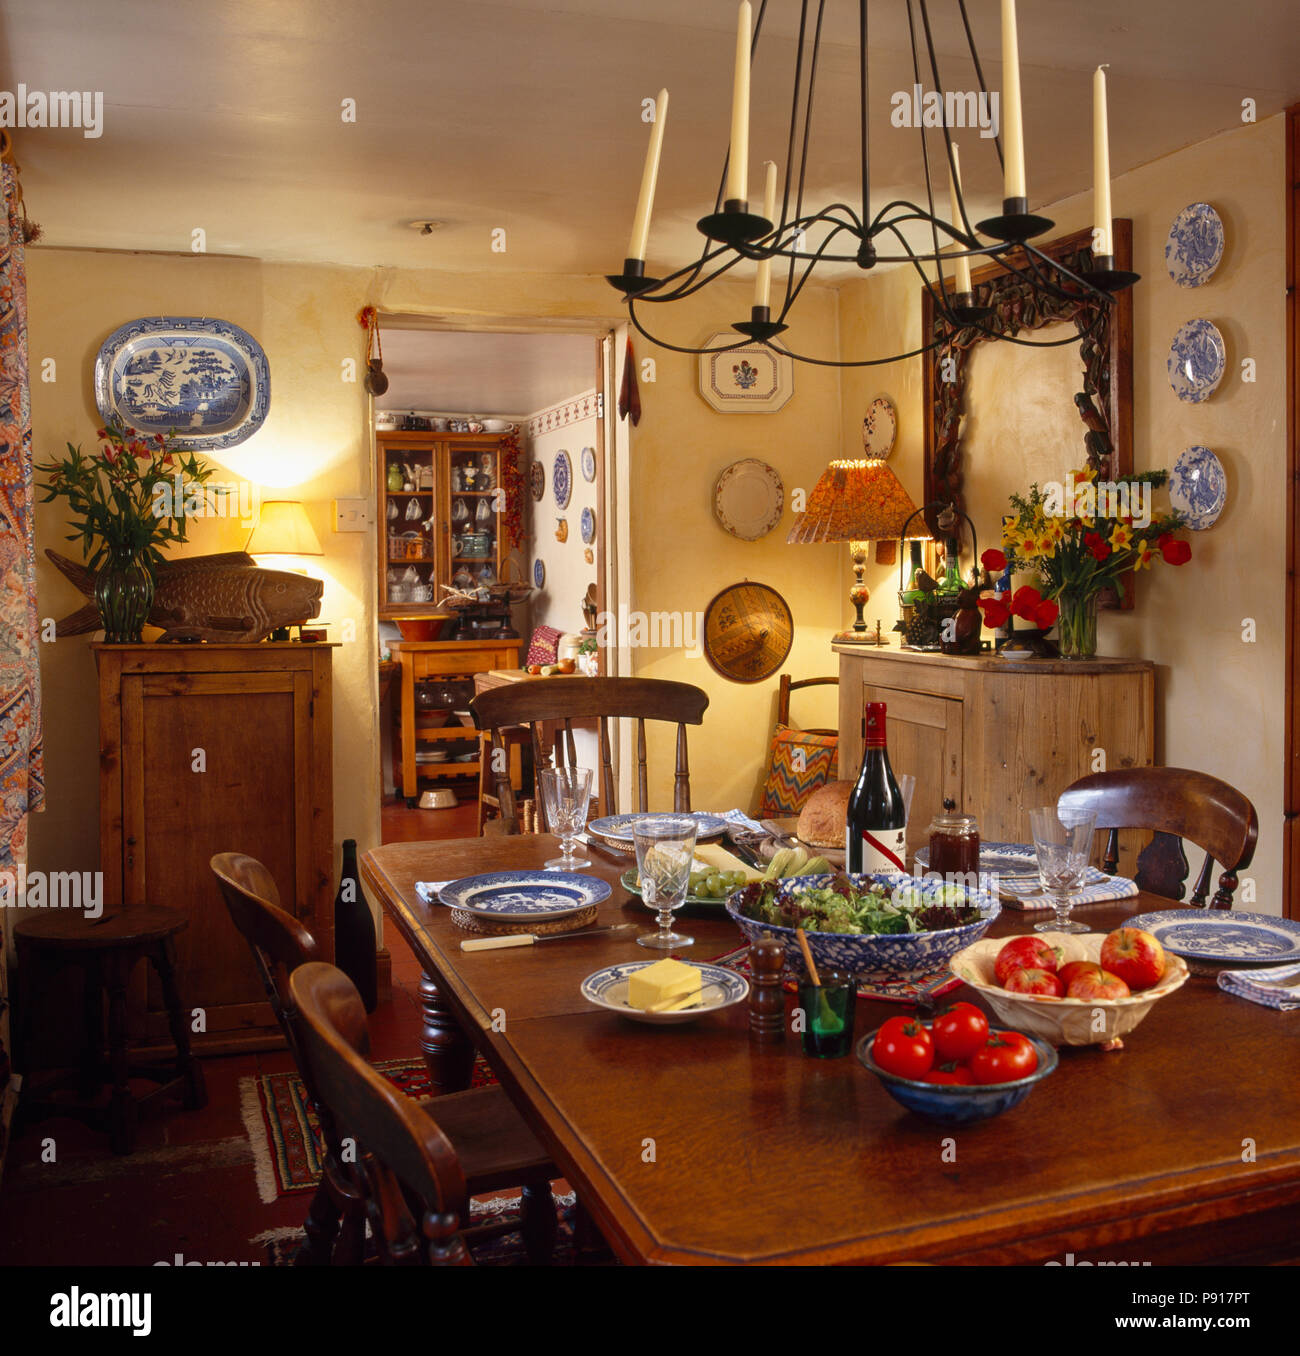 candle chandelier above table set for lunch in cottage dining room rh alamy com